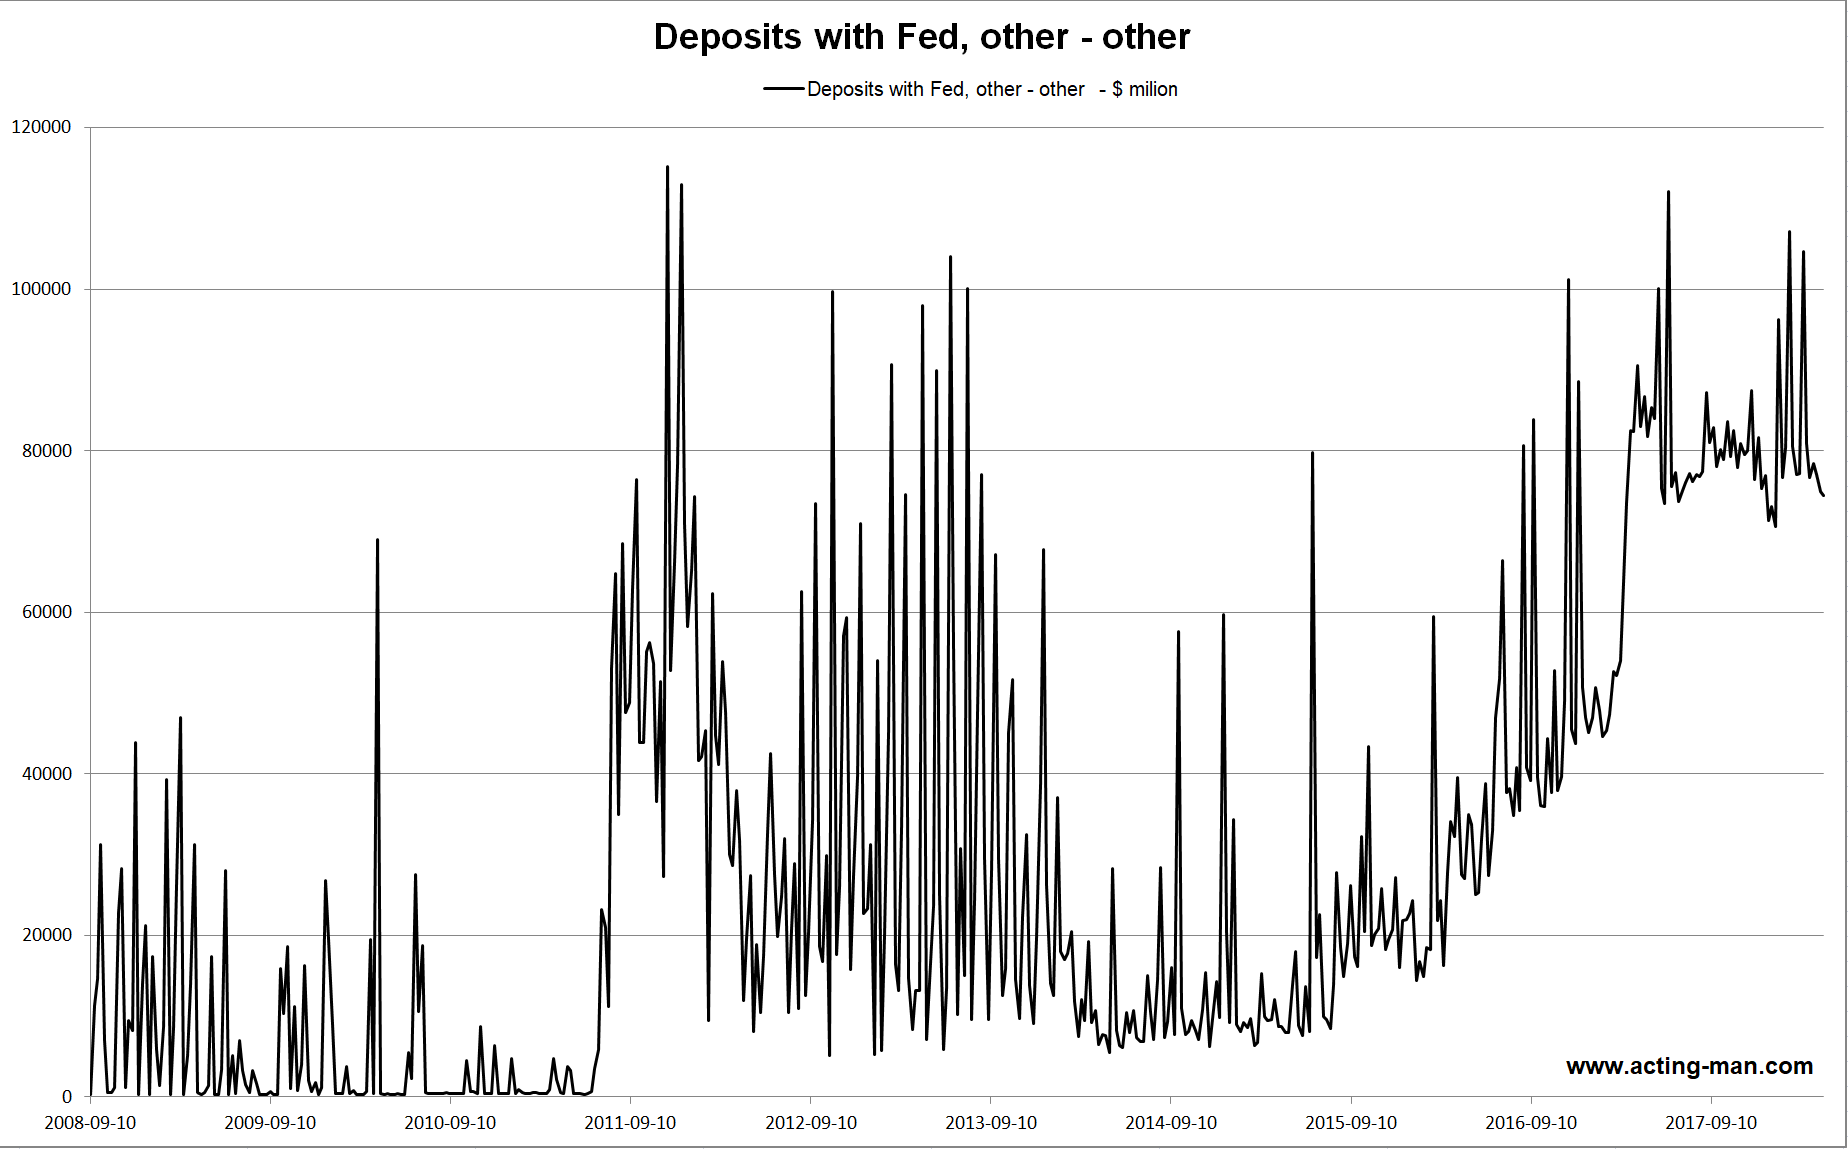 Deposits with Fed, Oct 2008 - Apr 2018